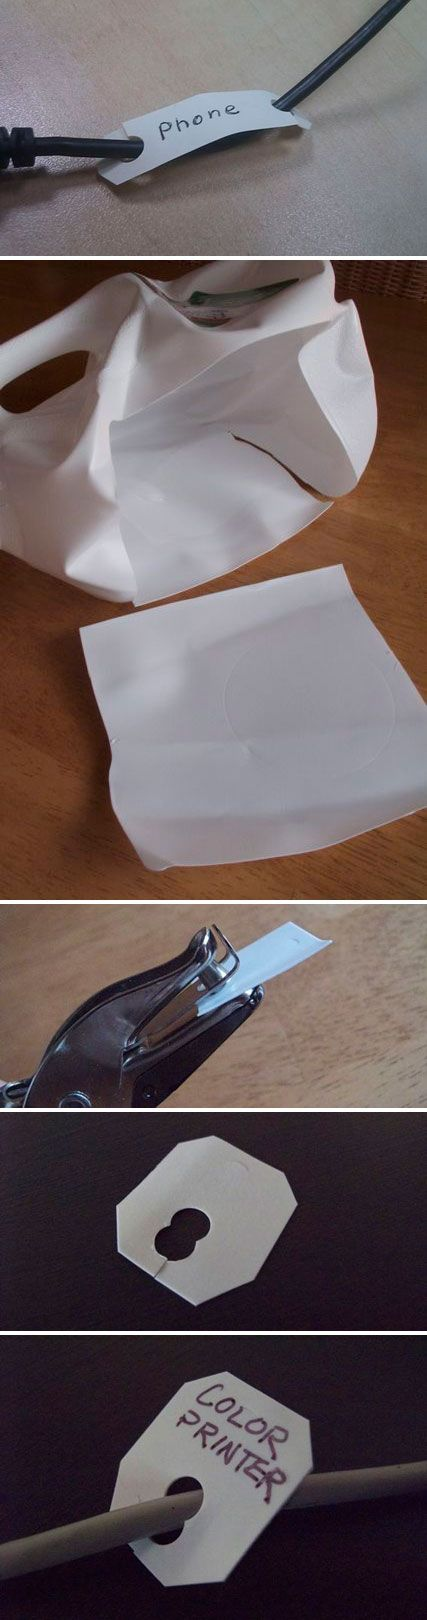 """LABEL :: How to make DIY """"Bread Clips"""" to organize your cables using a milk jug and hole punch!"""